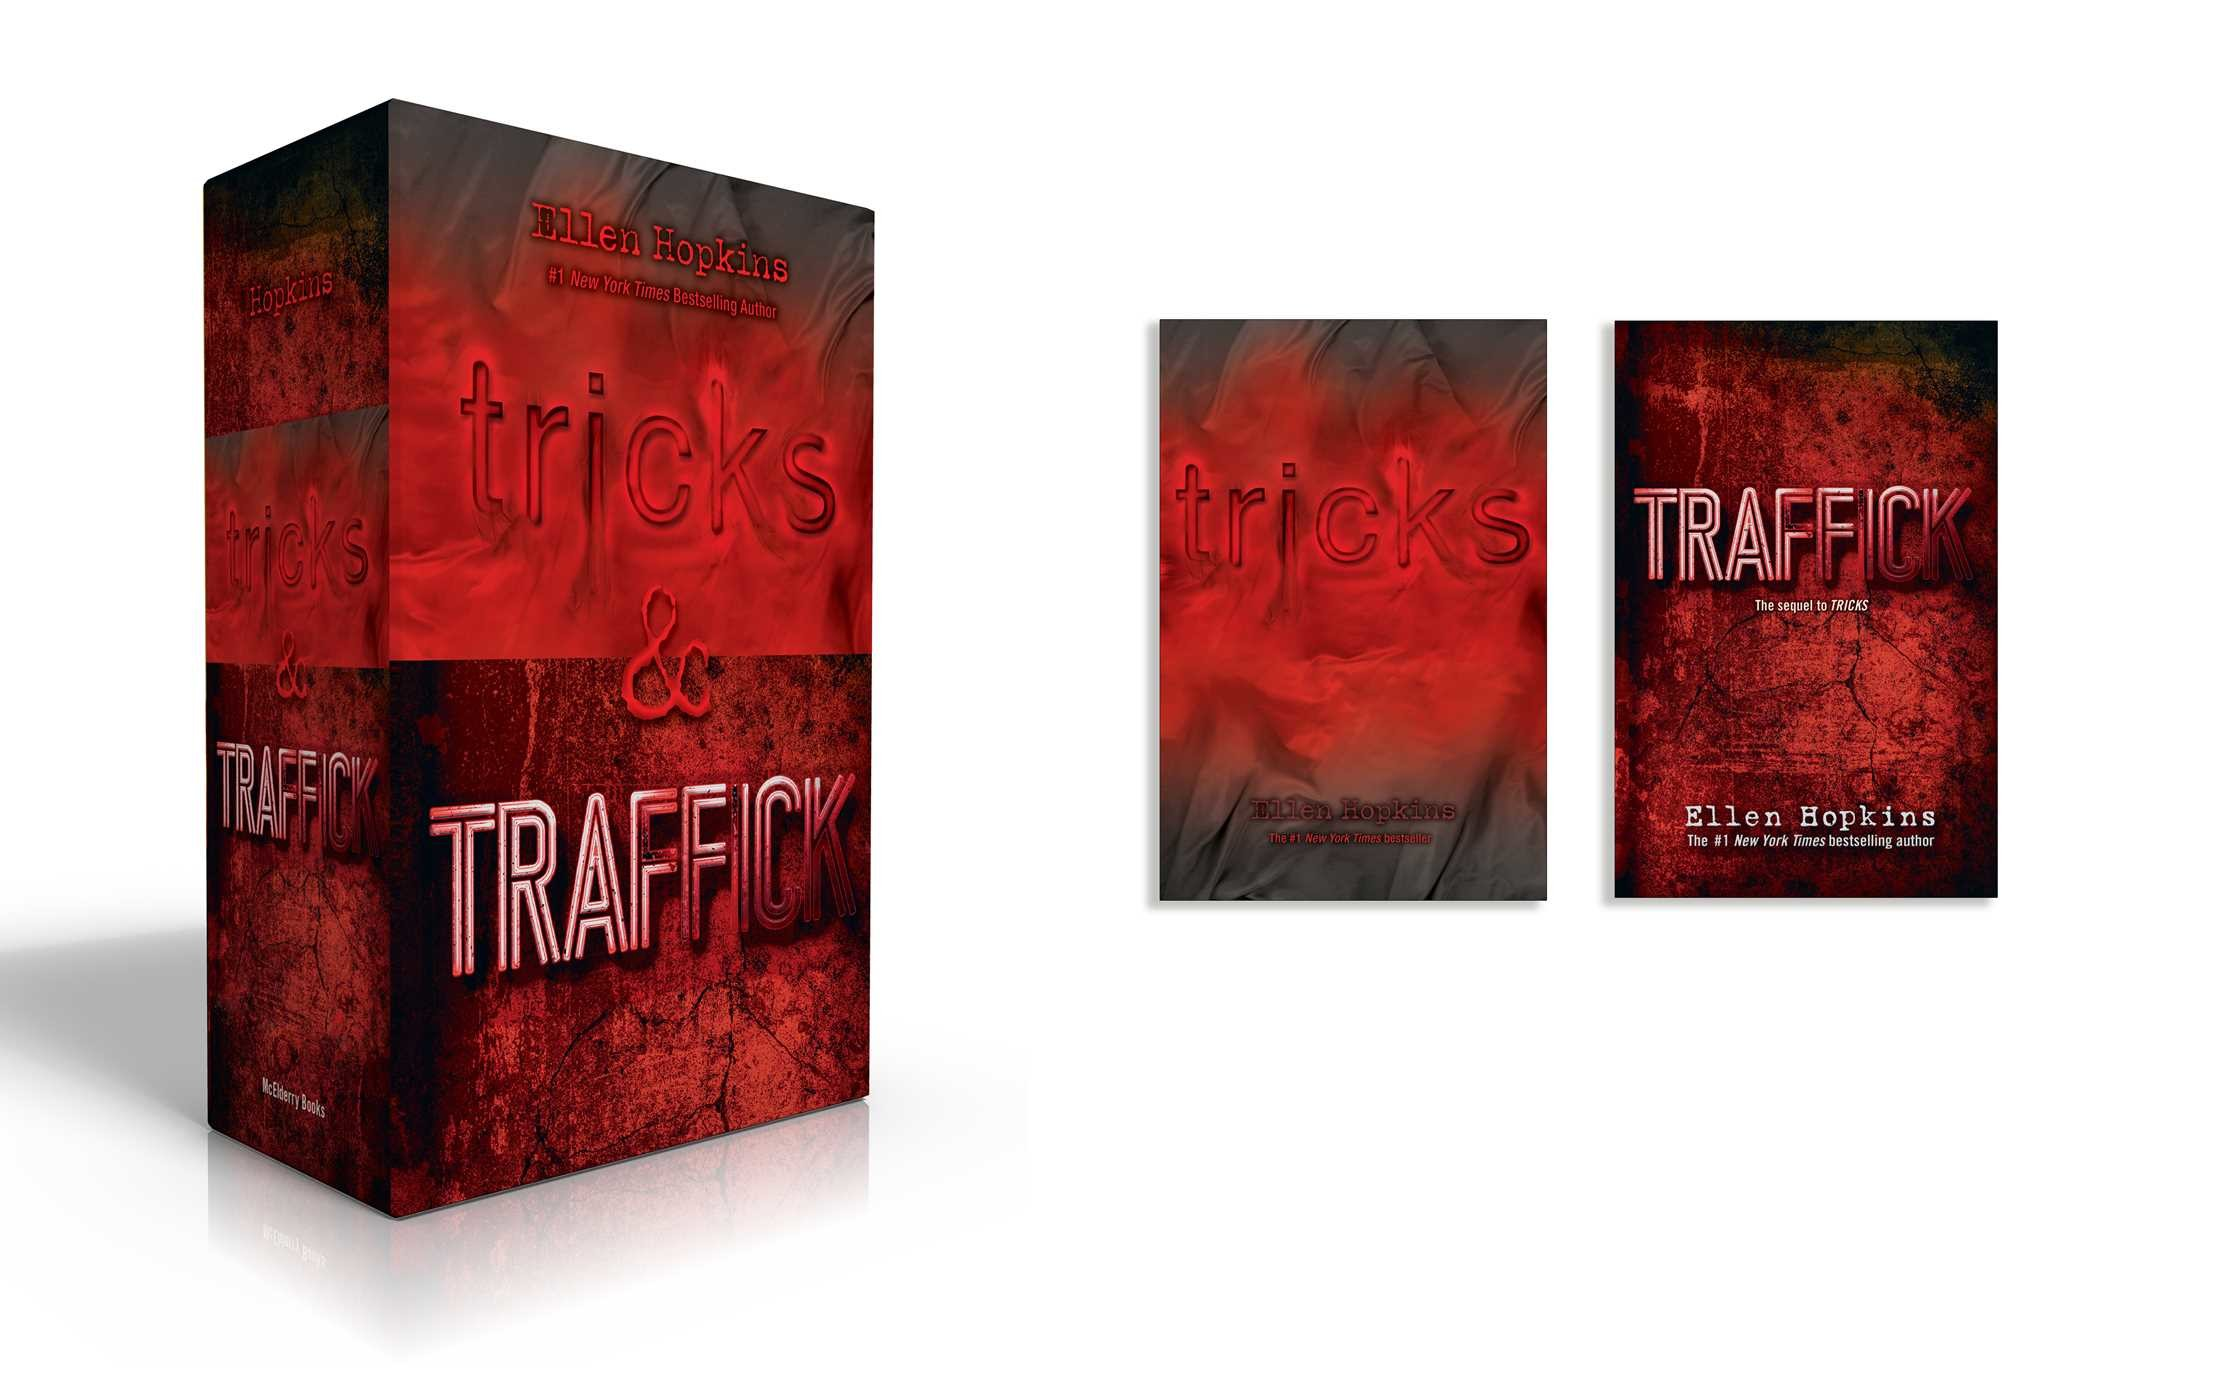 Tricks traffick 9781481498258.in01